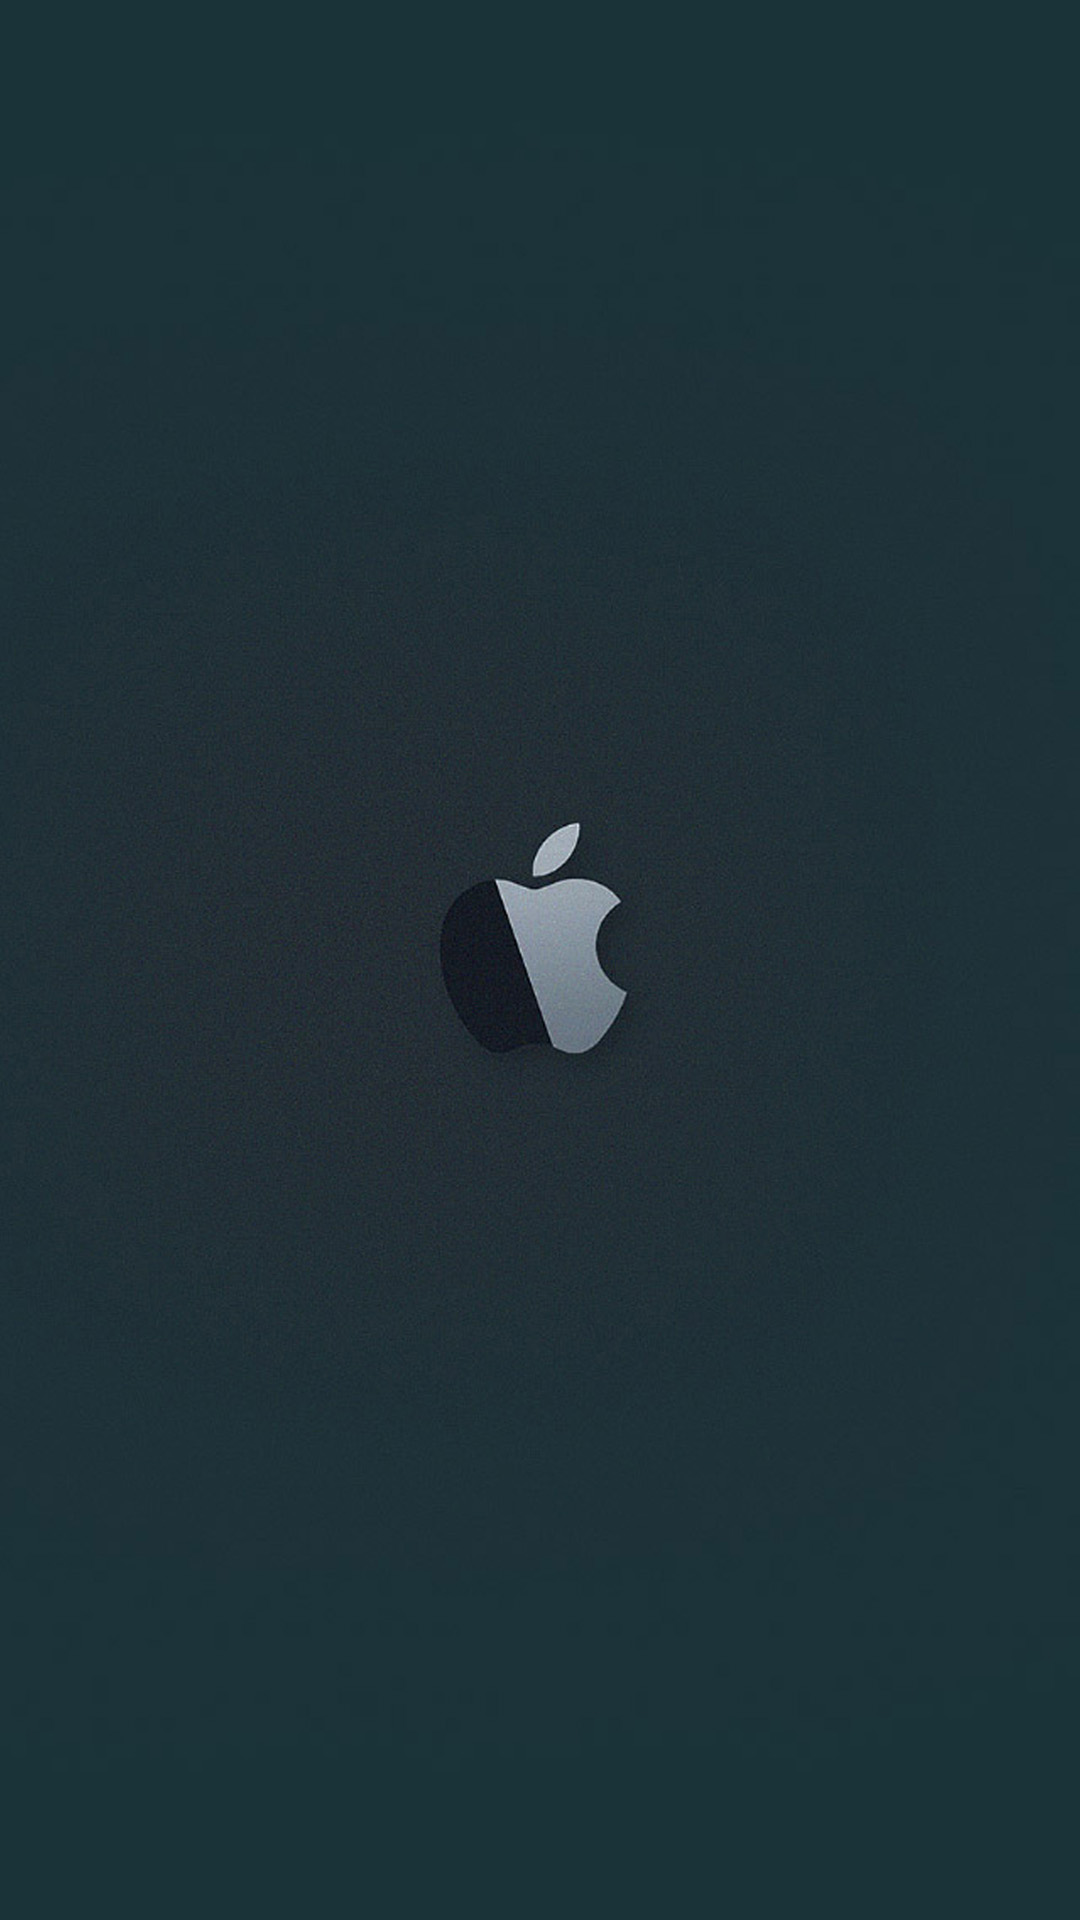 apple iphone wallpaper hd - wallpapersafari